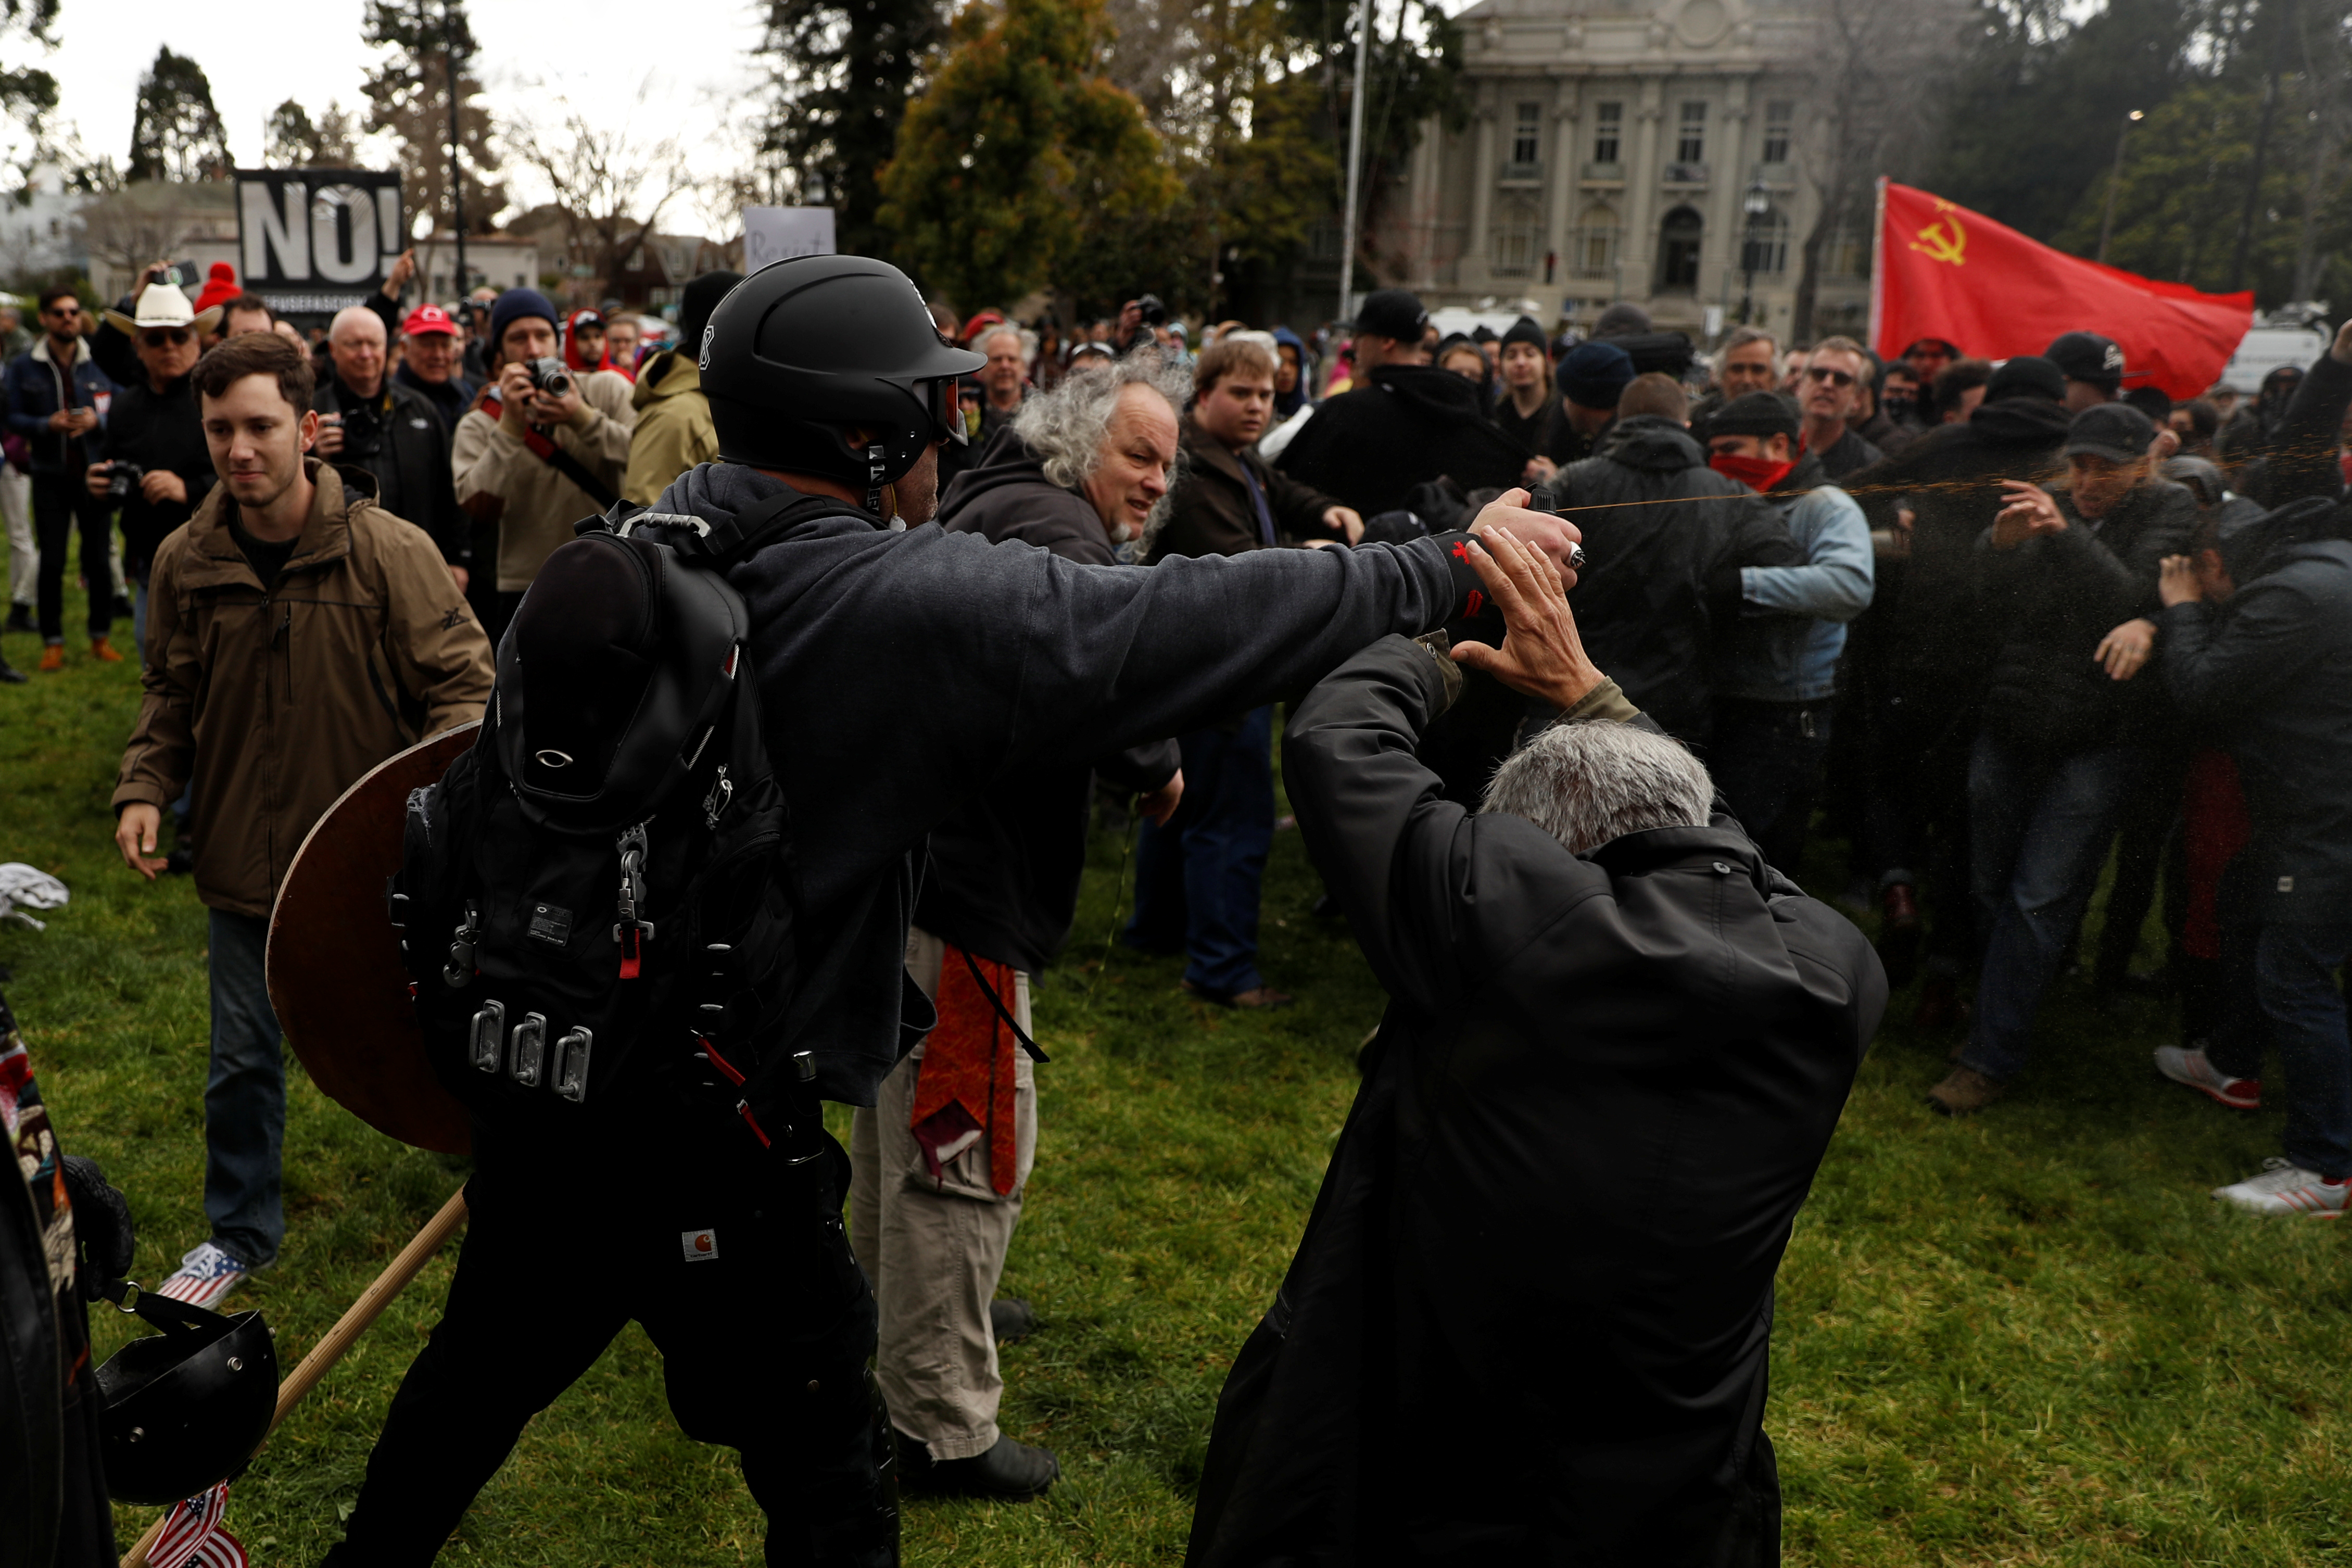 """A demonstrator in support of U.S. President Donald Trump sprays pepper spray towards a group of counter-protesters during a """"People 4 Trump"""" rally in Berkeley, California"""